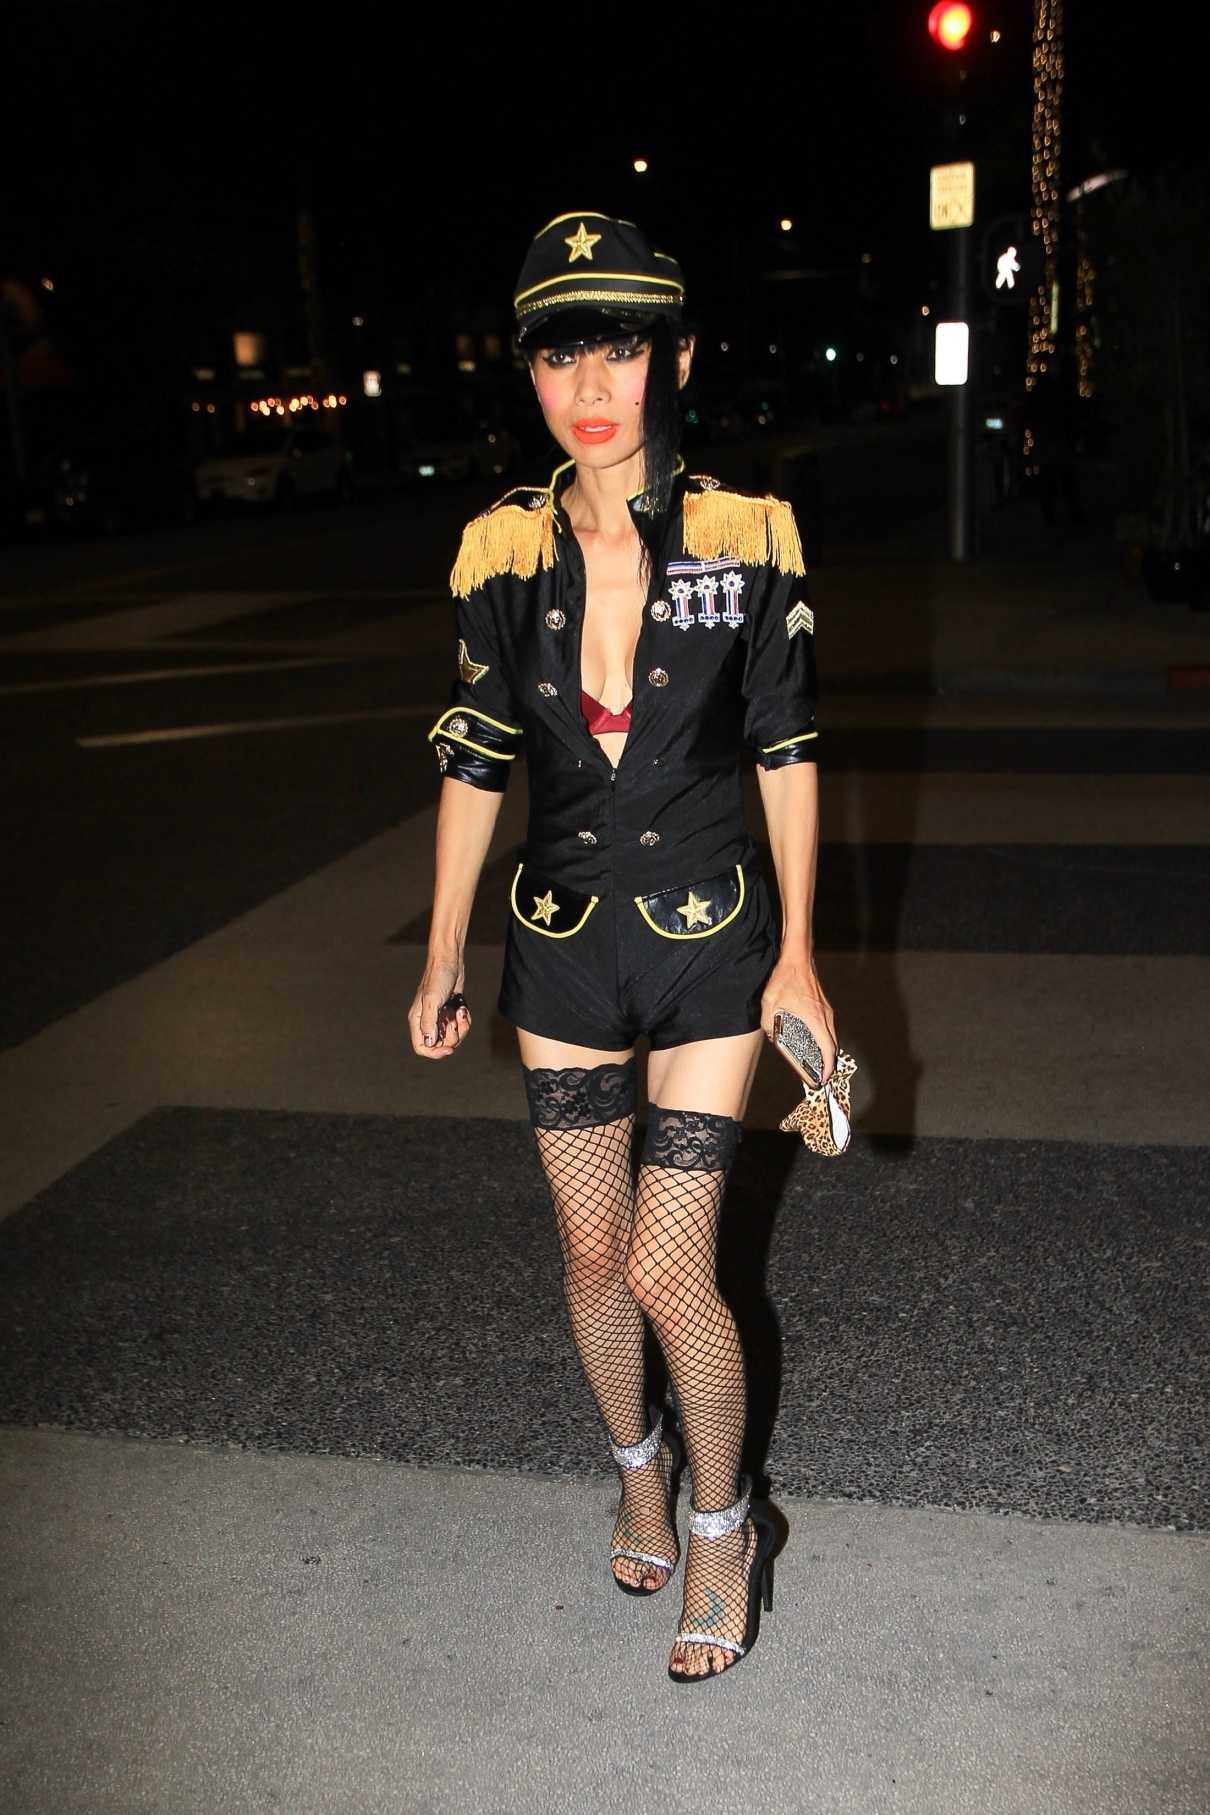 Bai Ling in a Custom Uniform